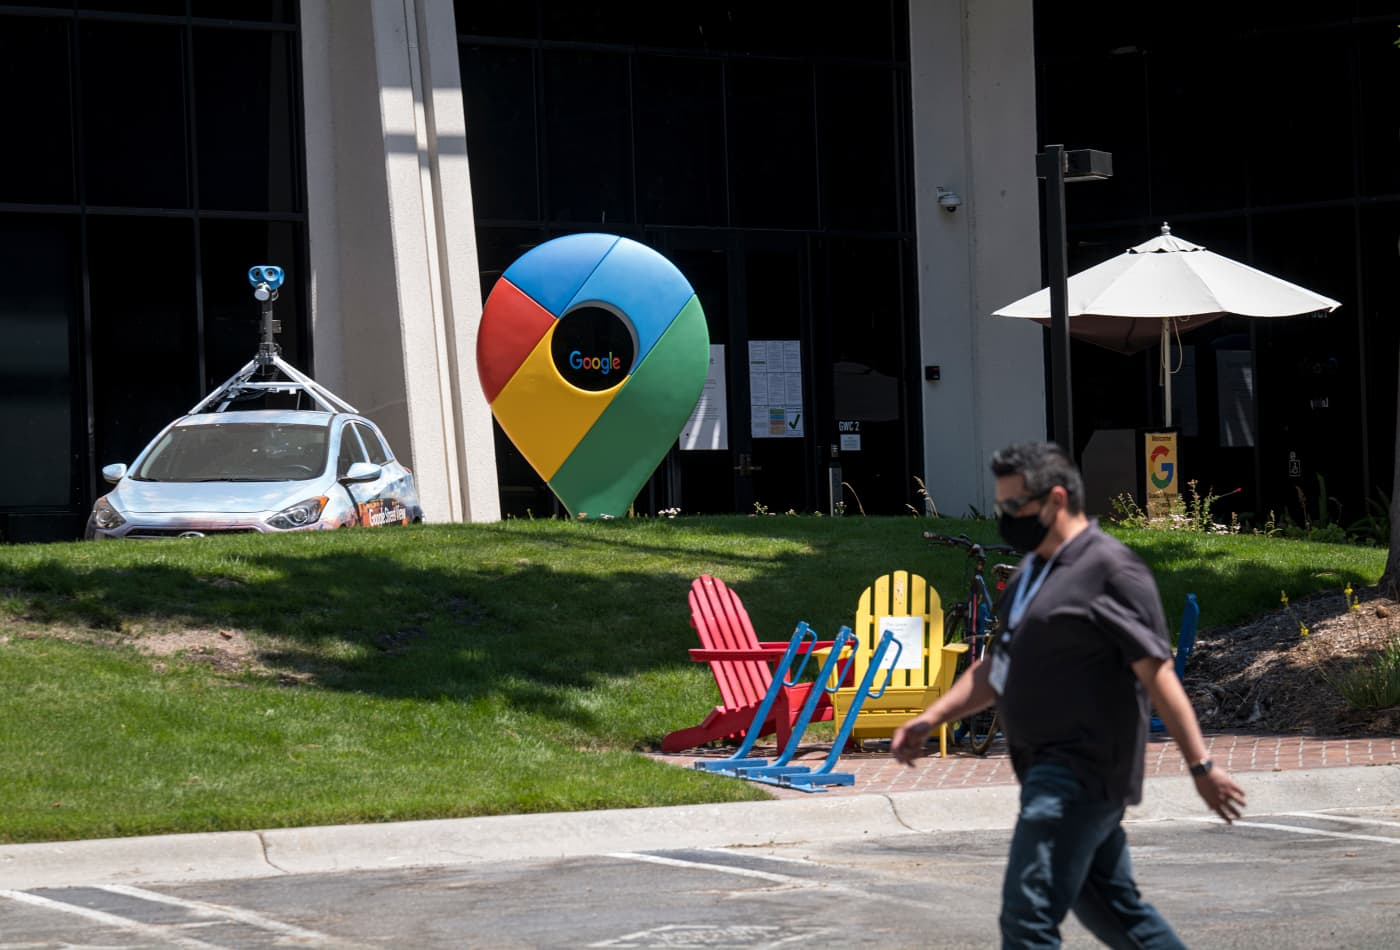 Suspicious package deemed safe at Google campus in Mountain View